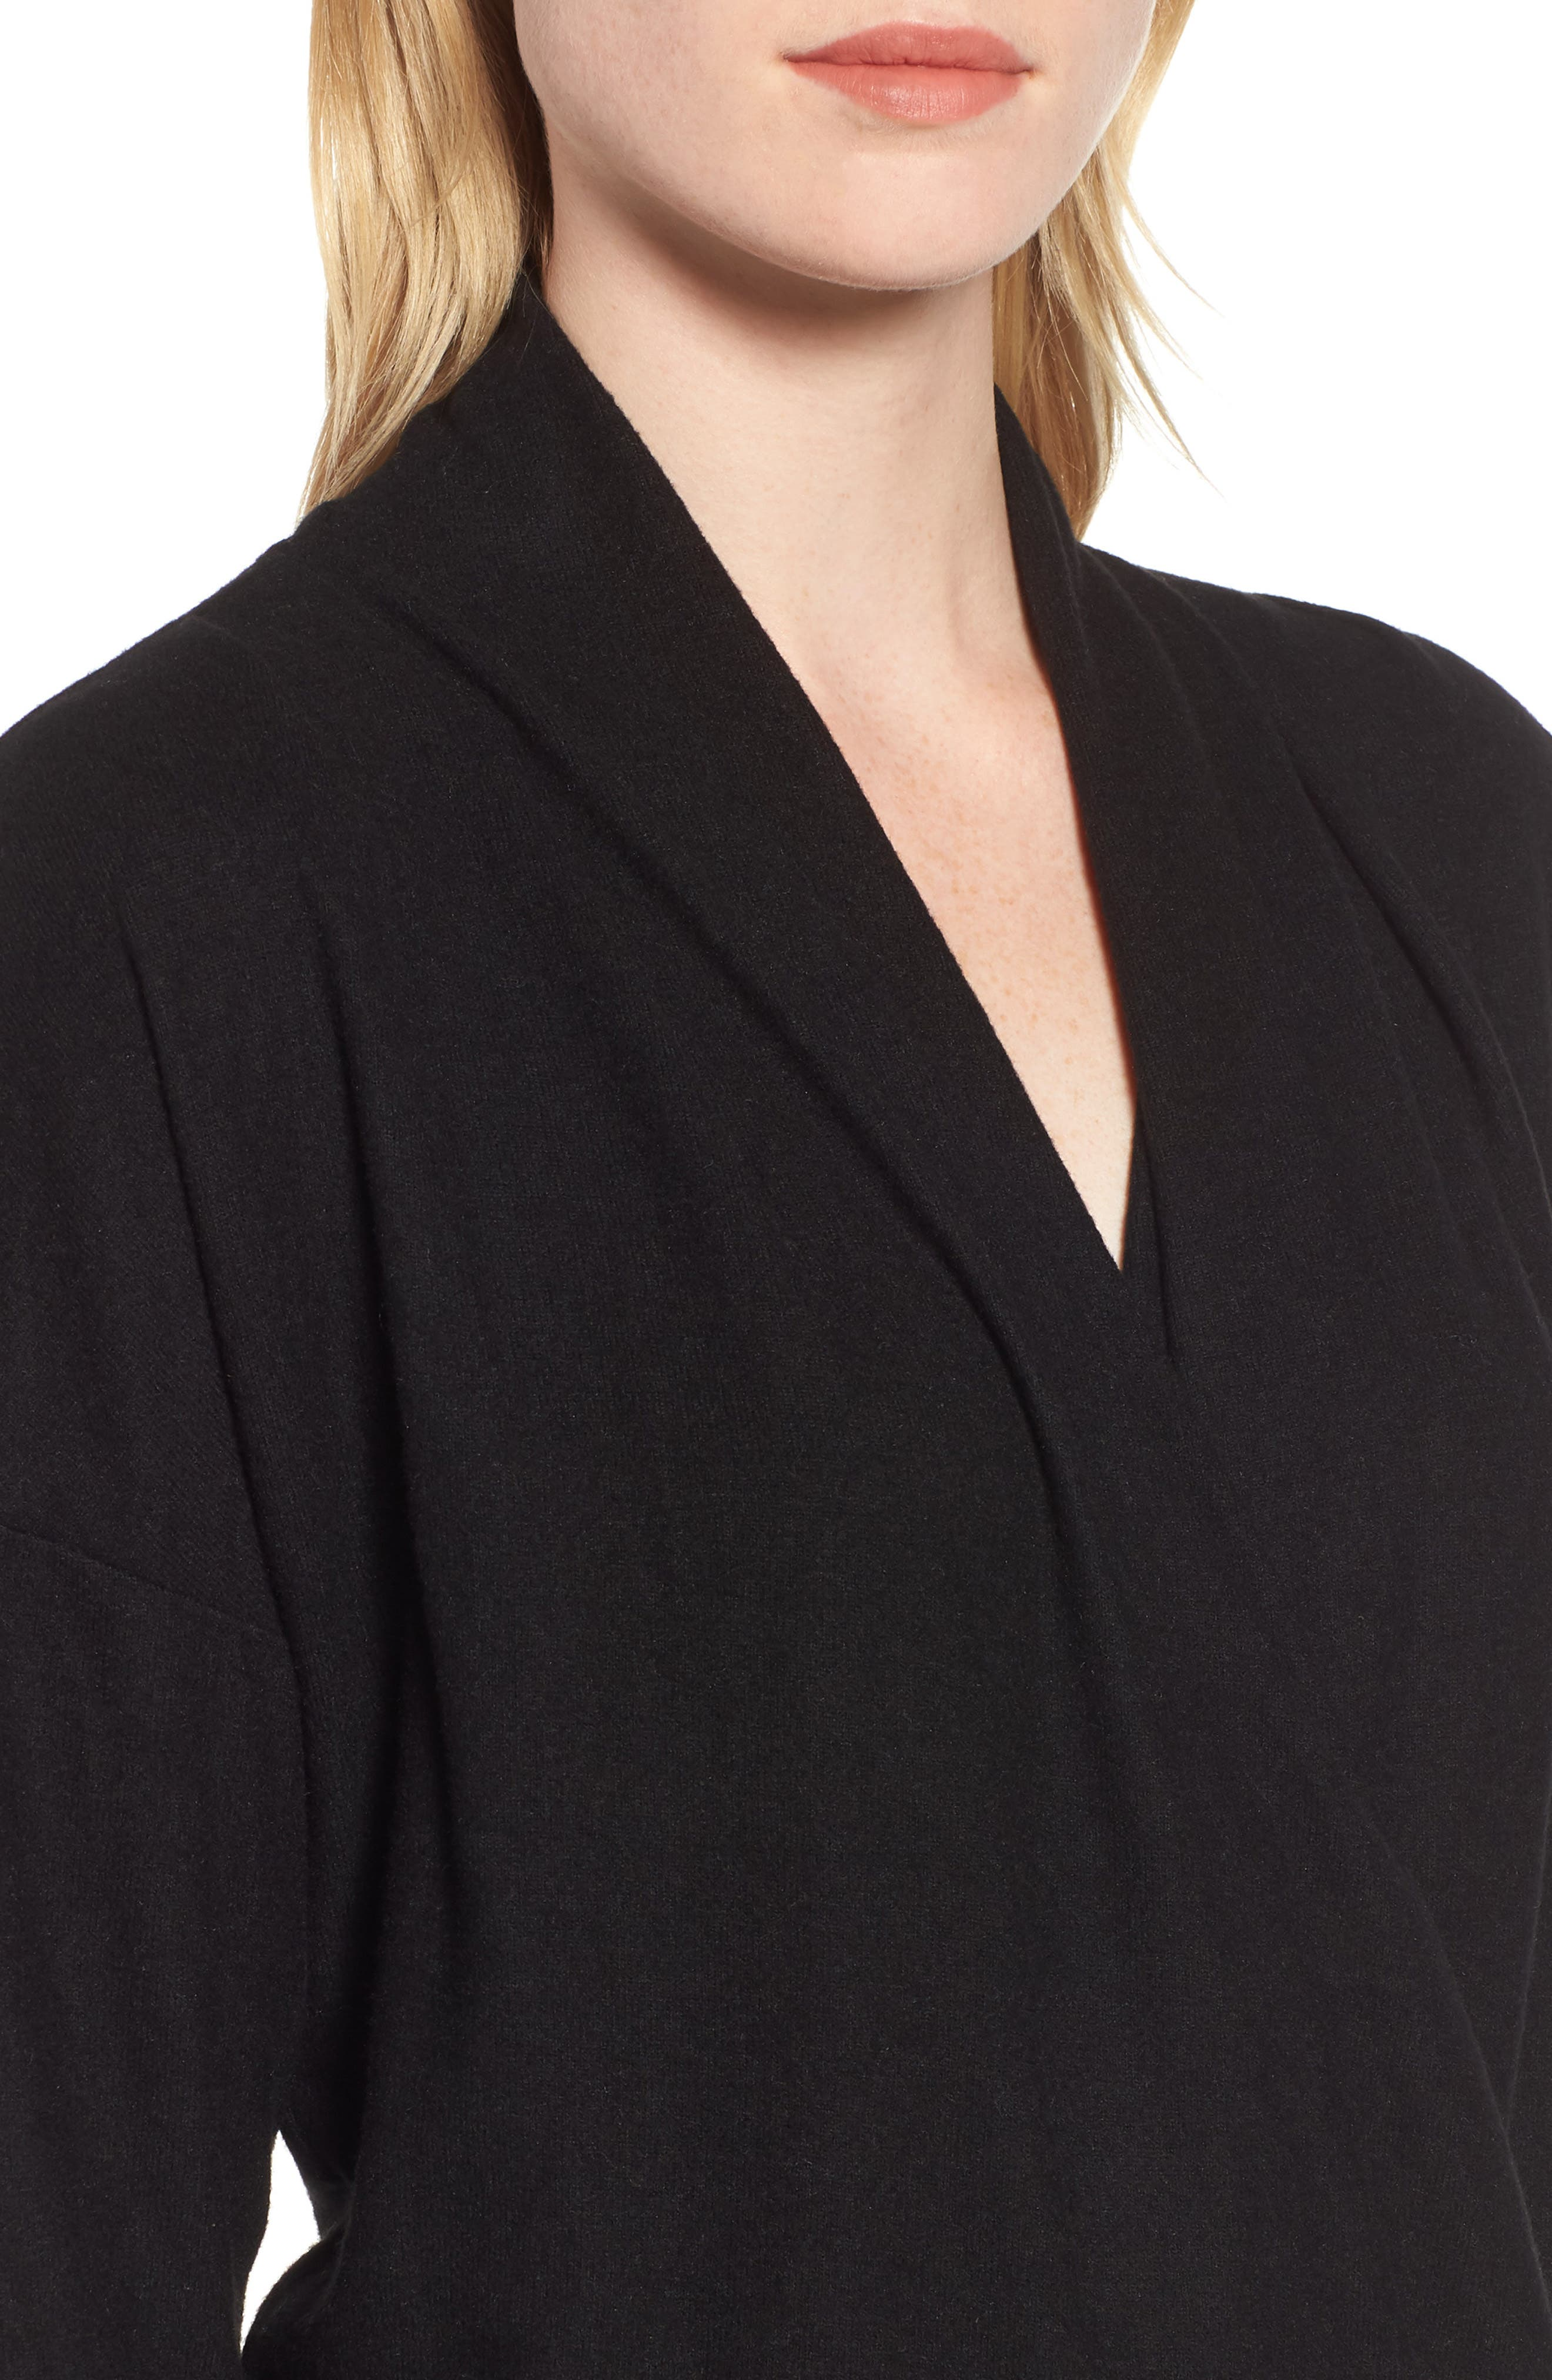 GIBSON, x Living in Yellow Diana Cozy Knit Wrap Top, Alternate thumbnail 4, color, SOLID BLACK